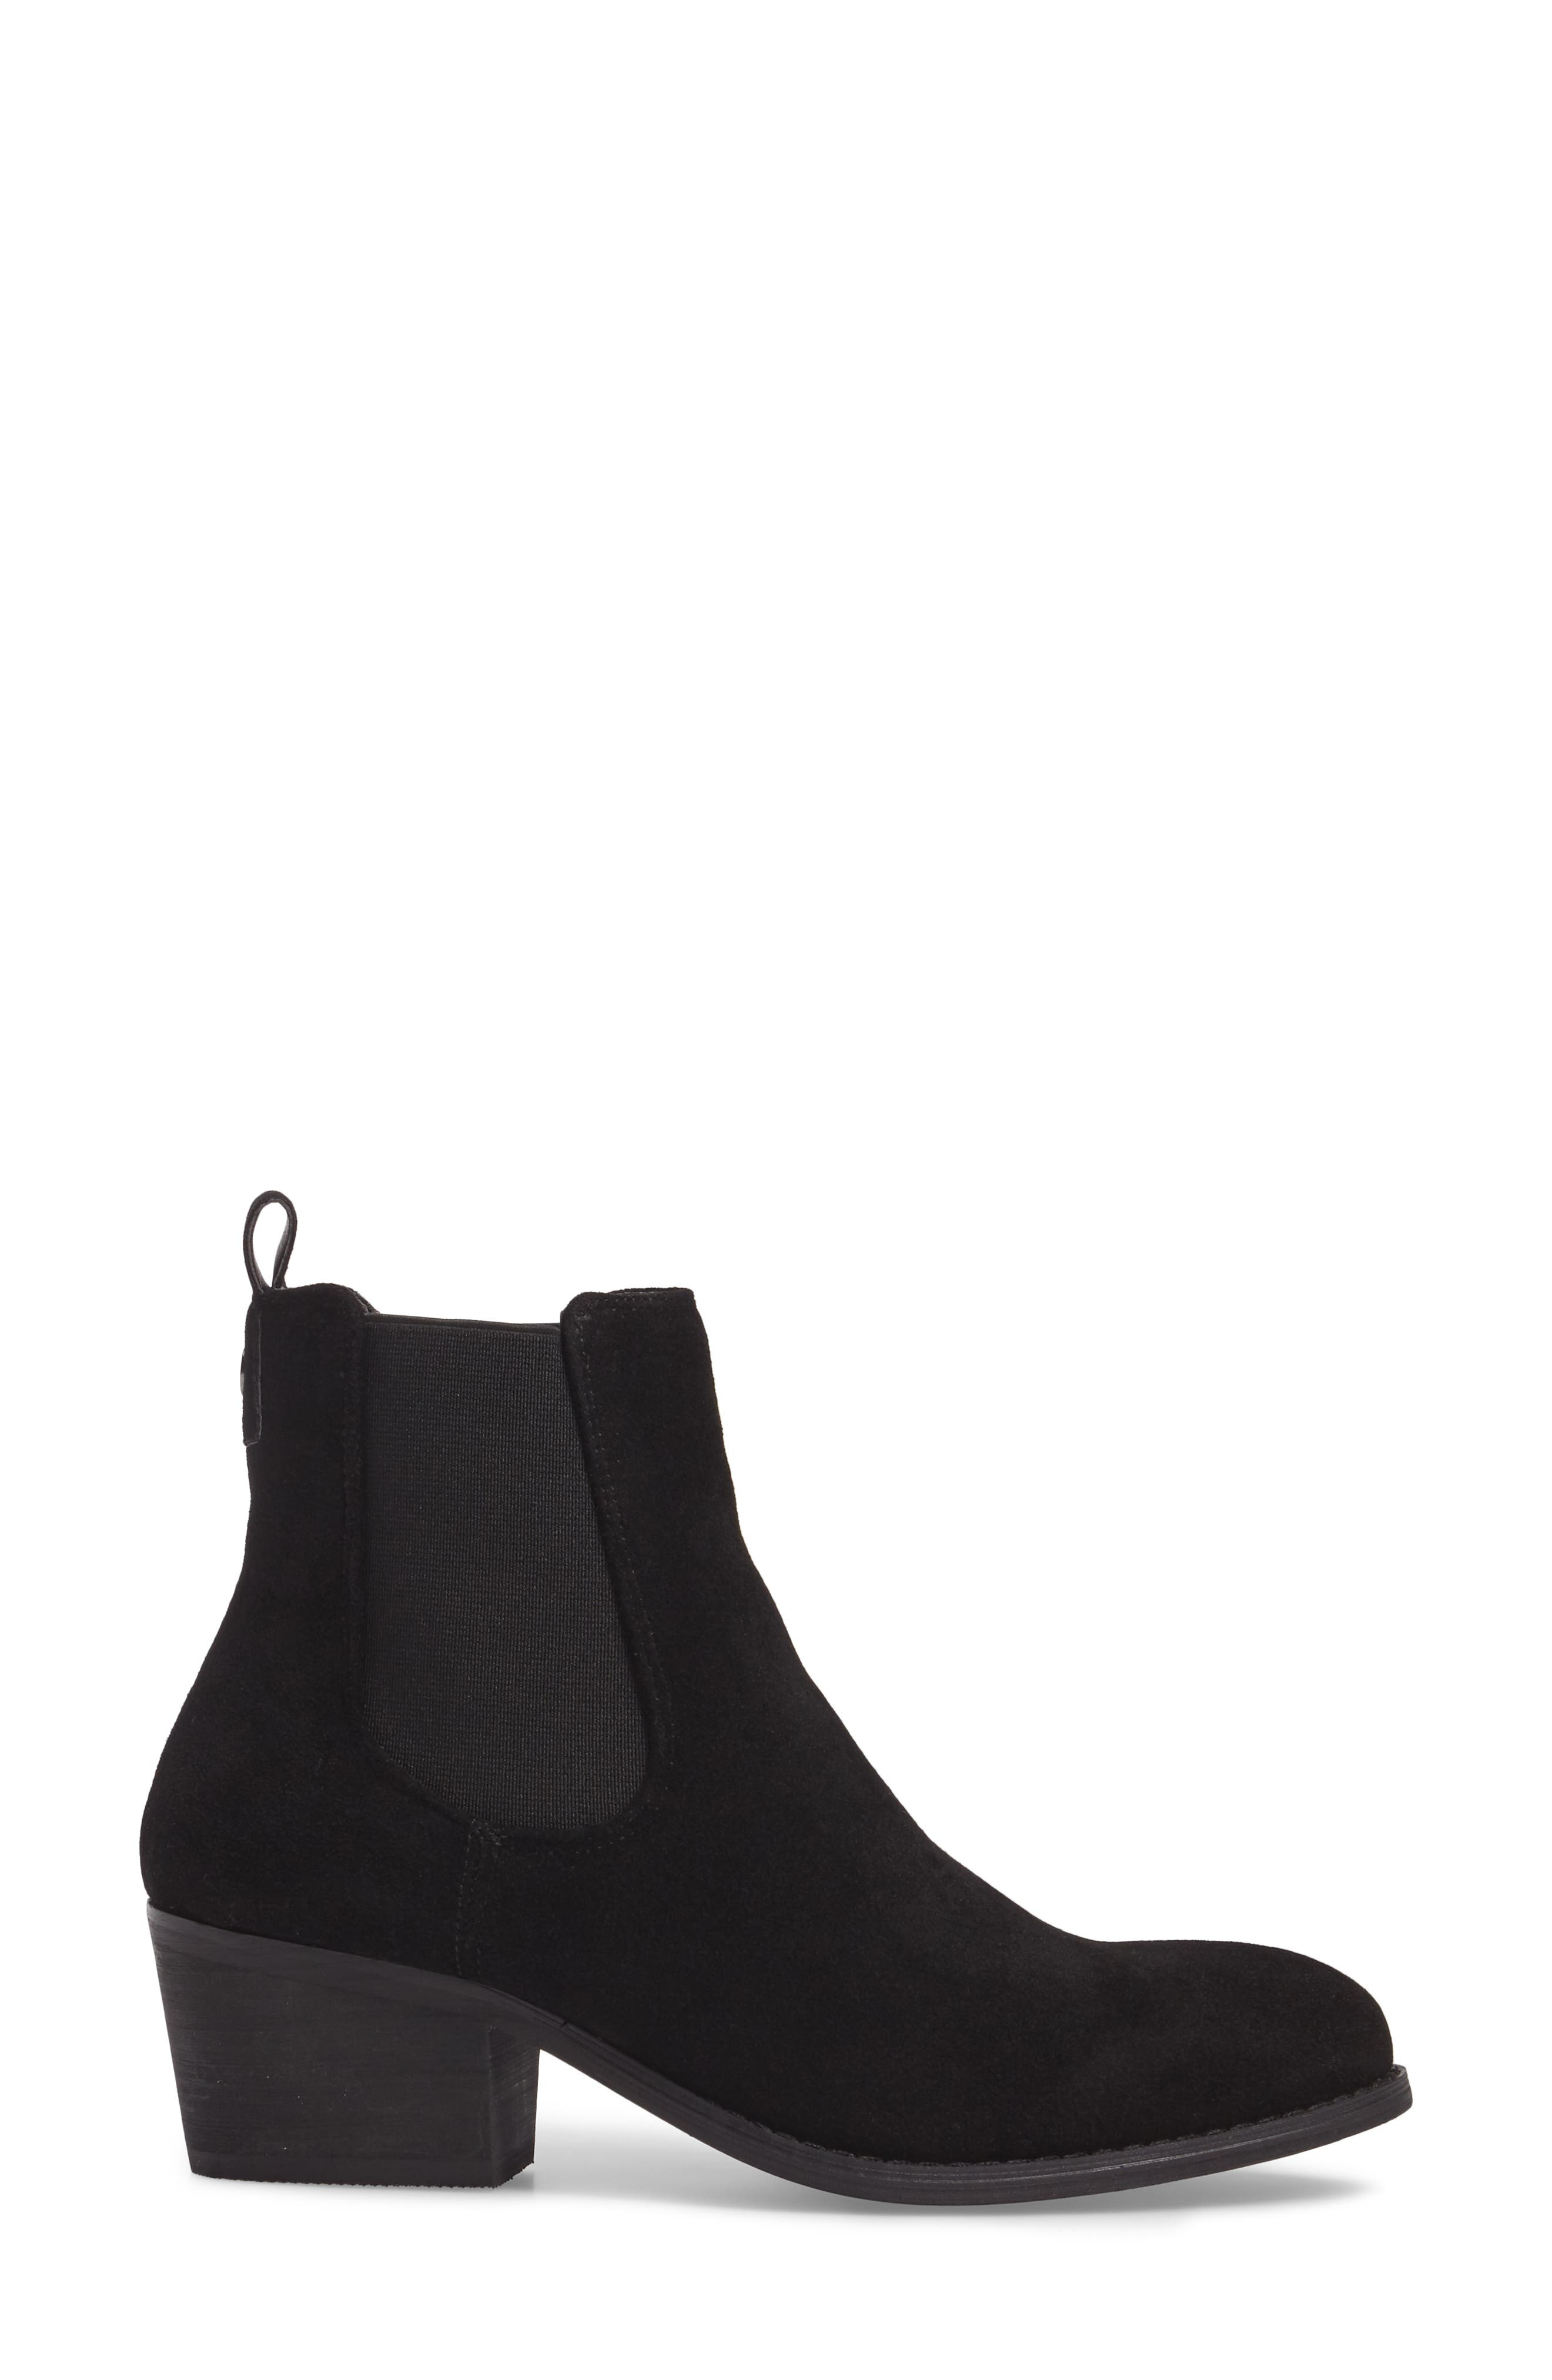 Ammore Chelsea Boot,                             Alternate thumbnail 3, color,                             Black Suede